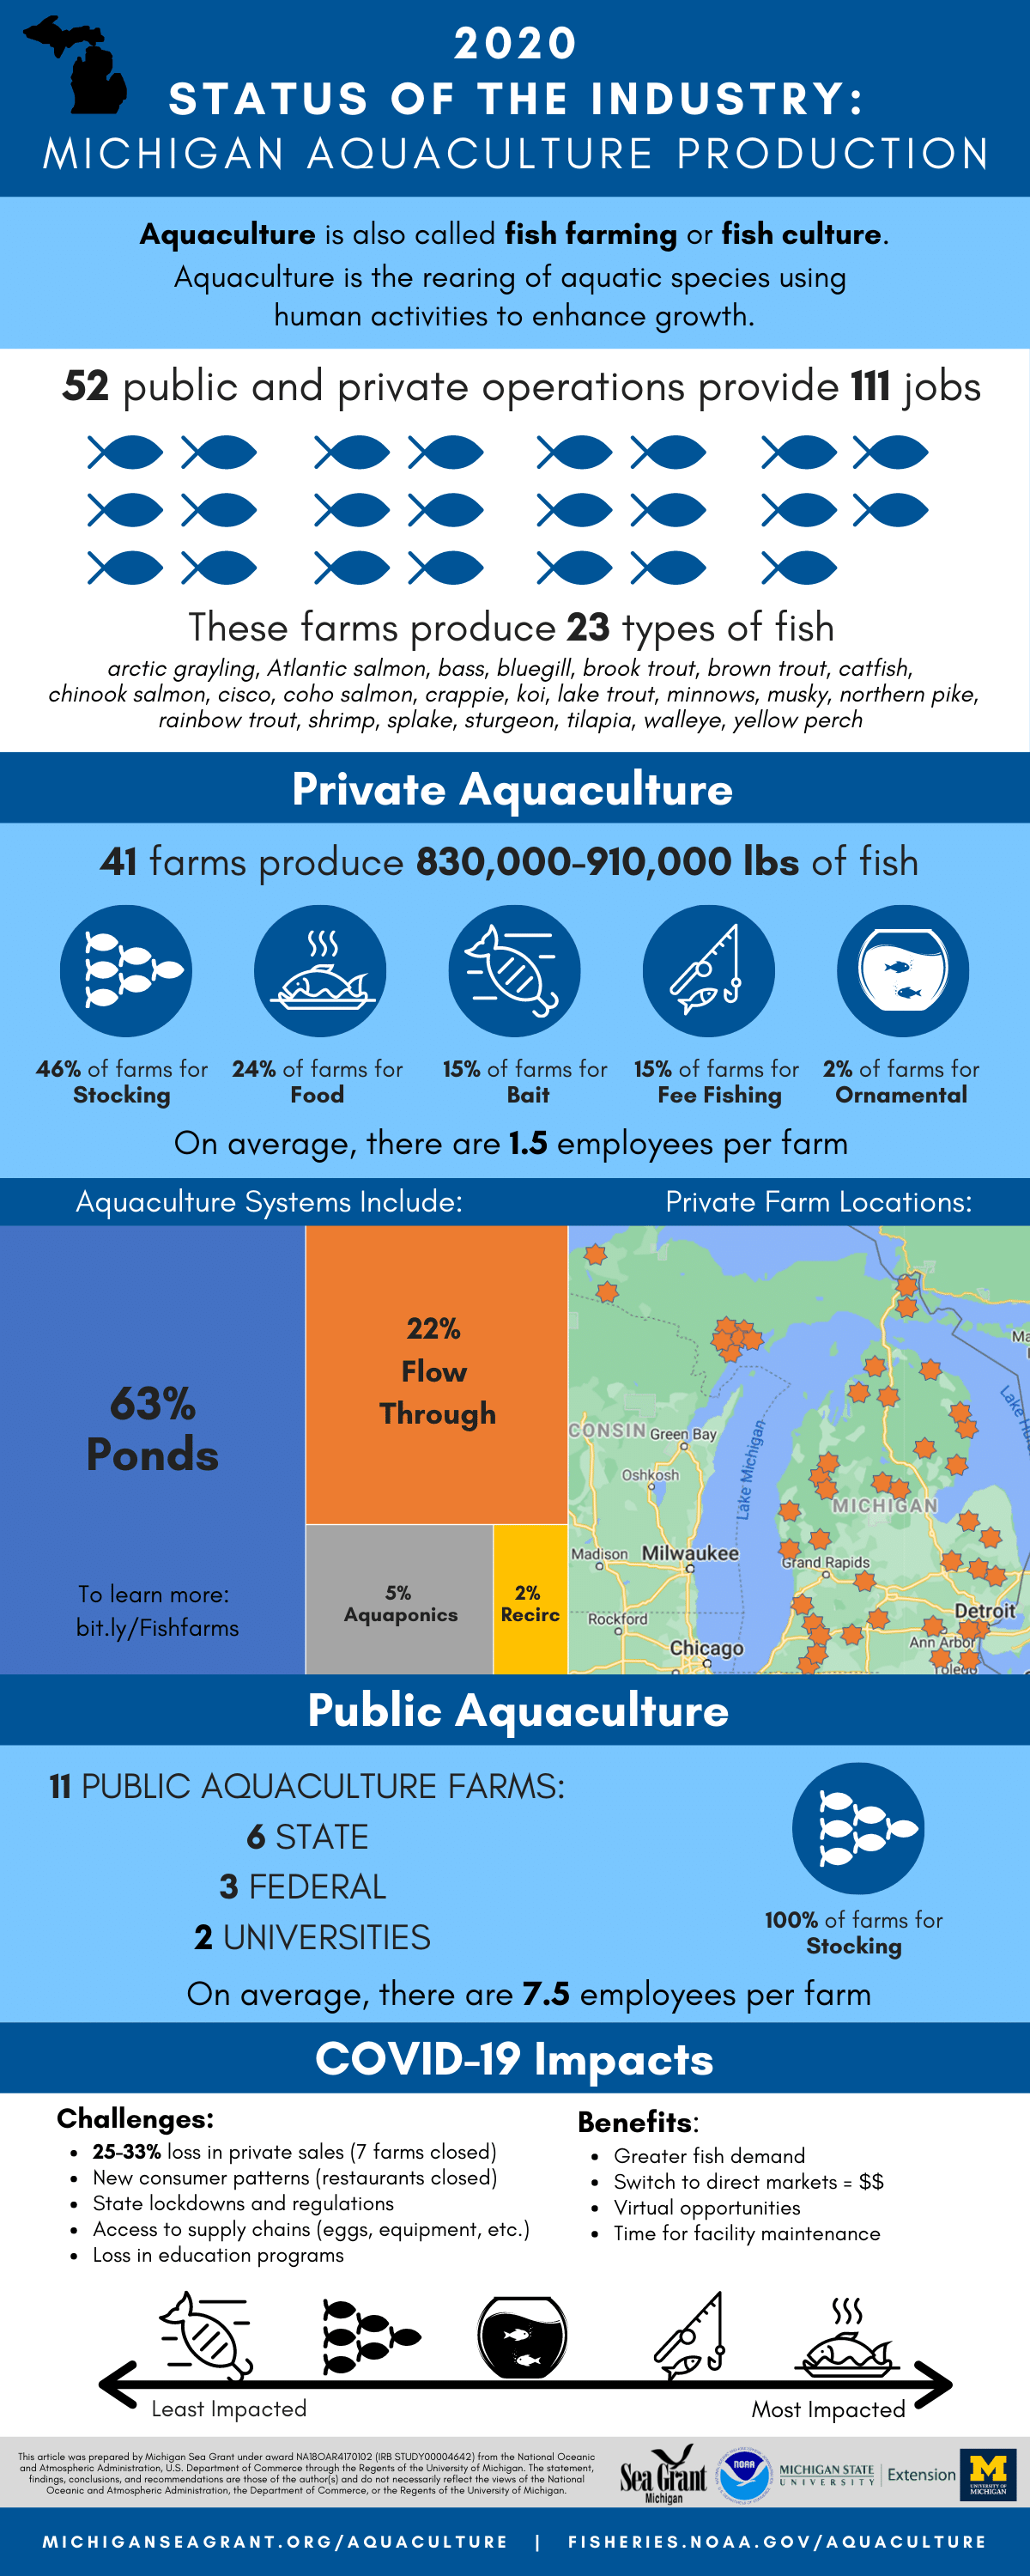 2020 State of the Industry Michigan Aquaculture